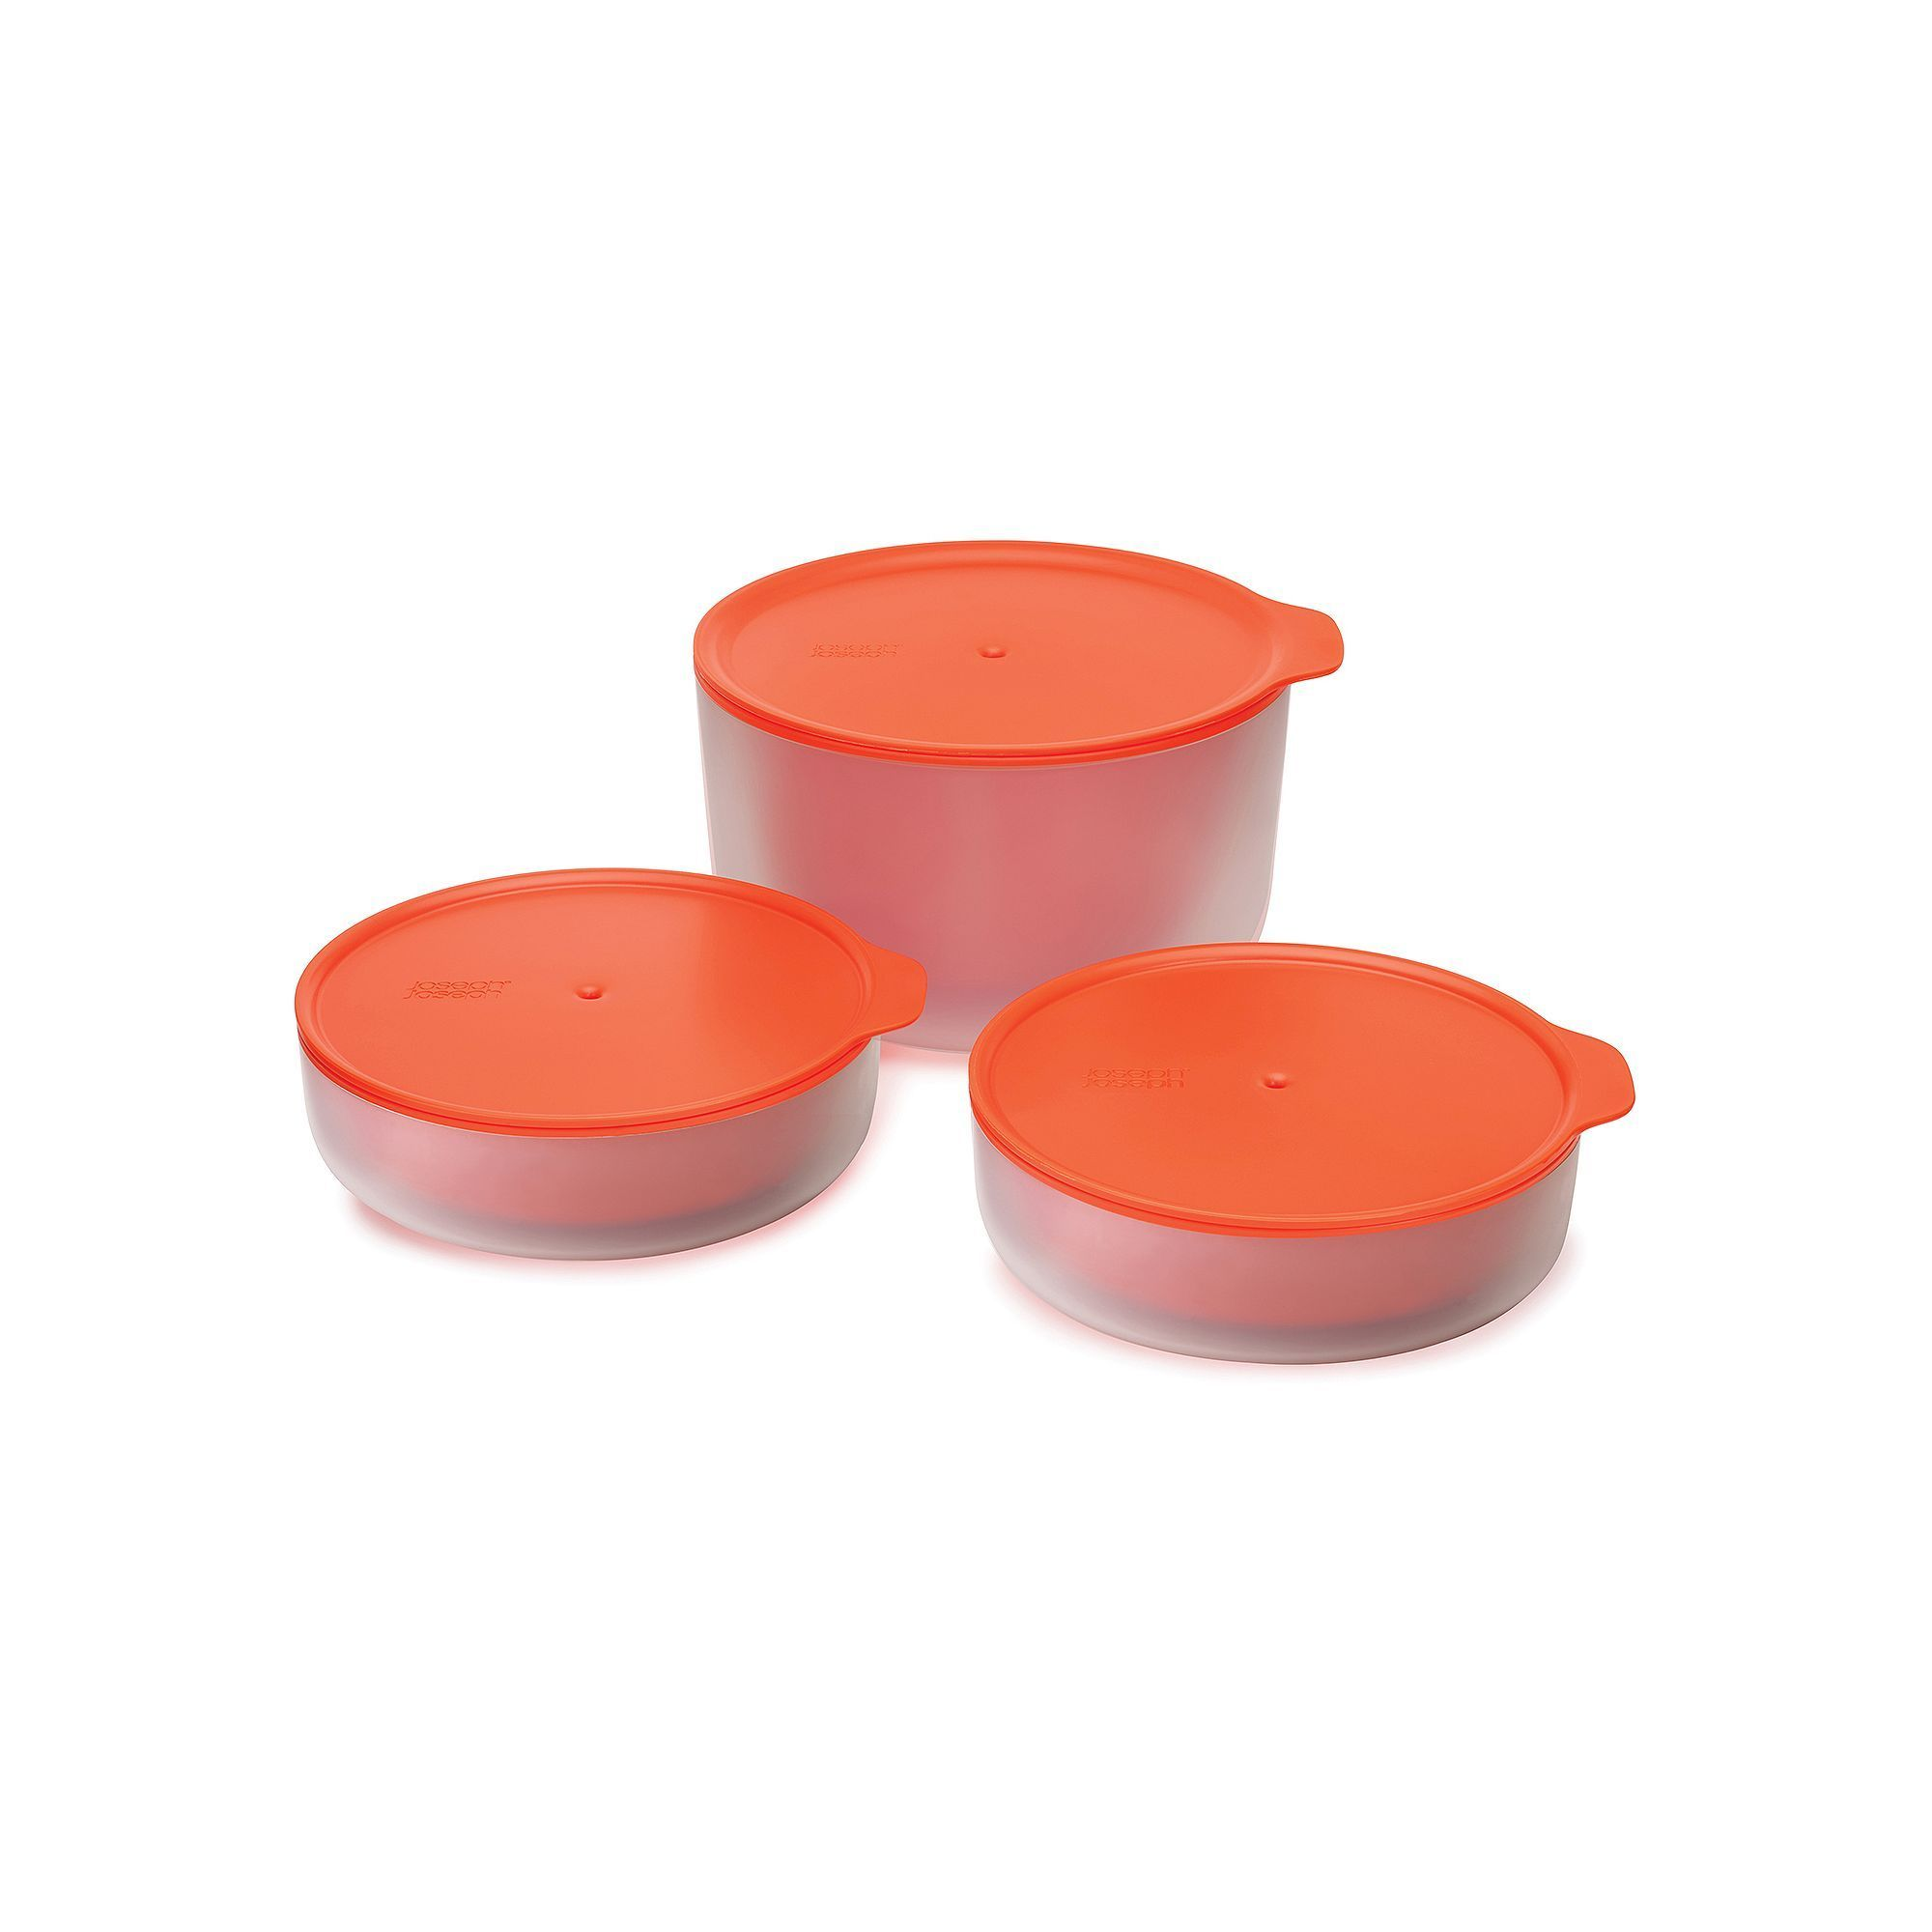 Joseph Joseph M-Cuisine 3-pc. Cool Touch Microwave Bowl Set, Orange